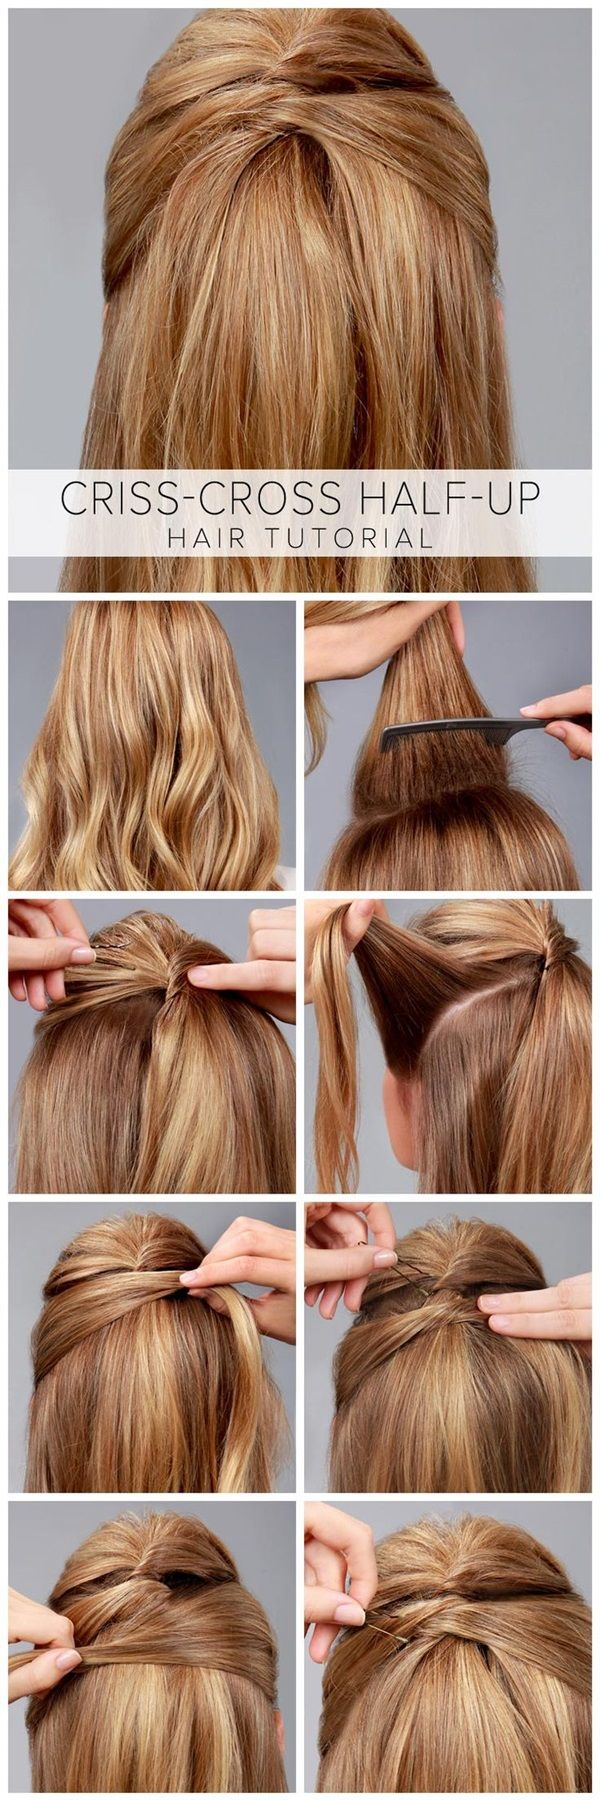 12 Simple Five Minute Hairstyles for Office Women: DIY  Hair